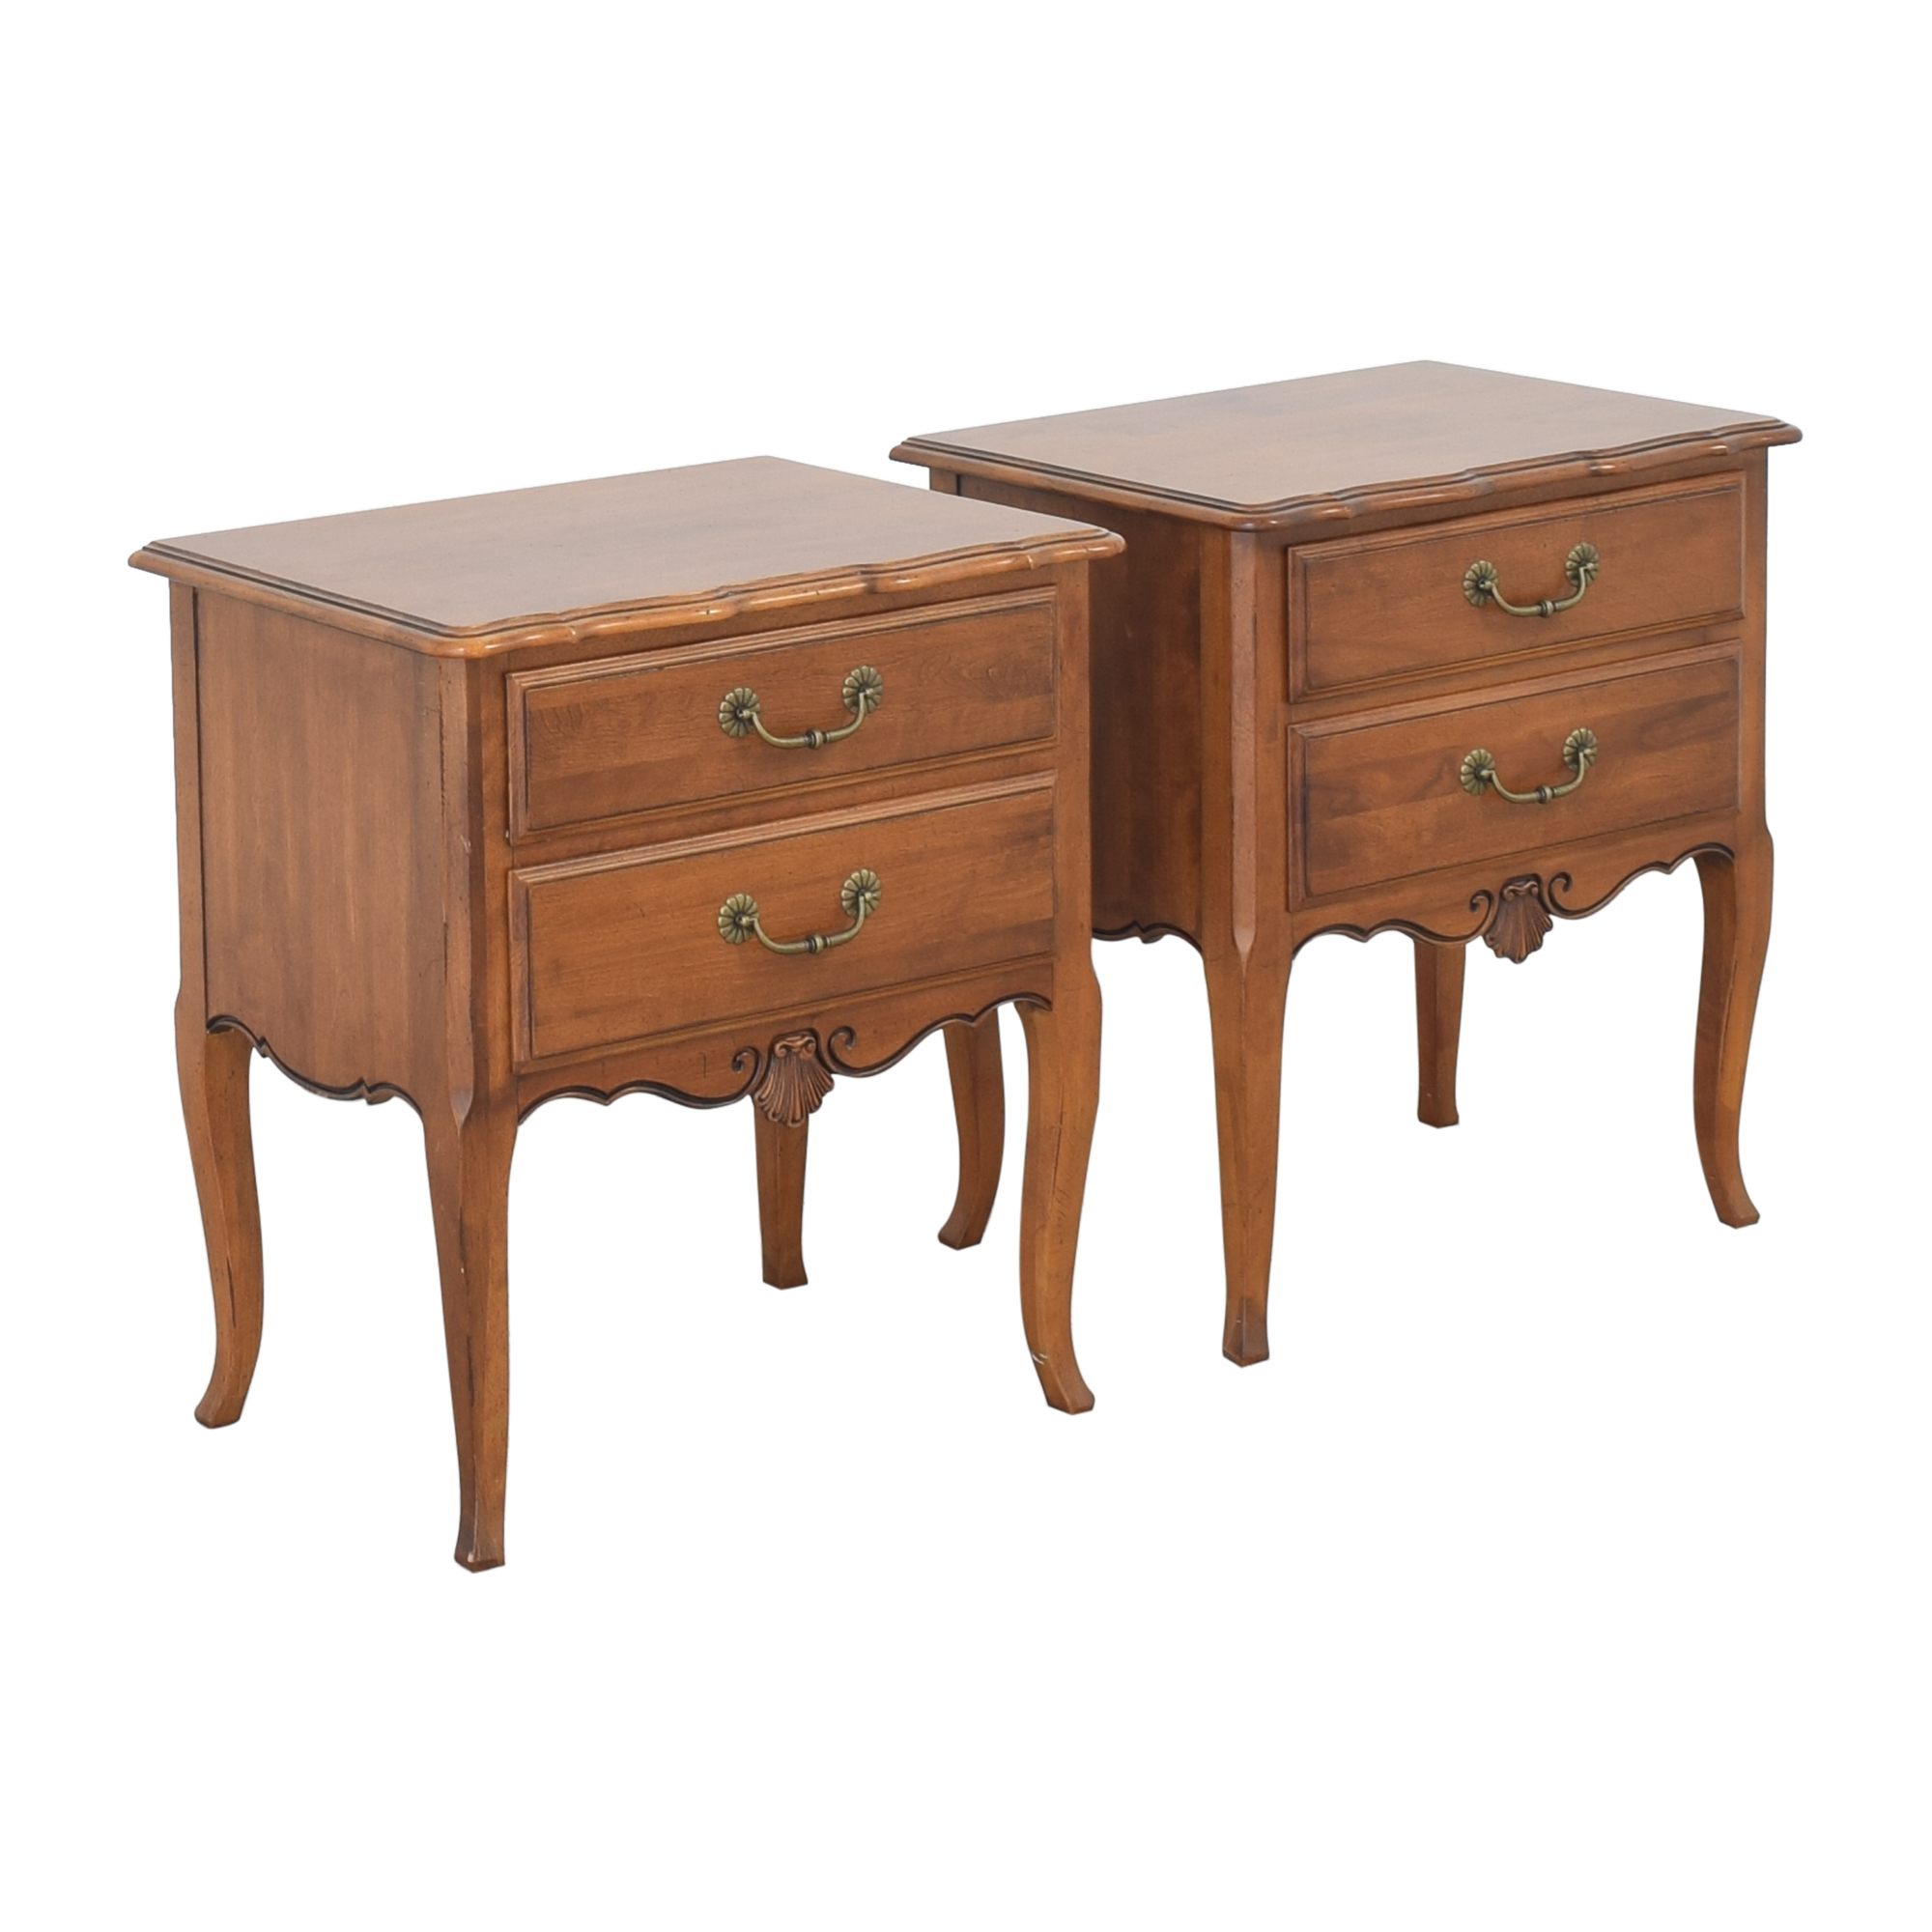 Ethan Allen Ethan Allen Country French End Tables ma